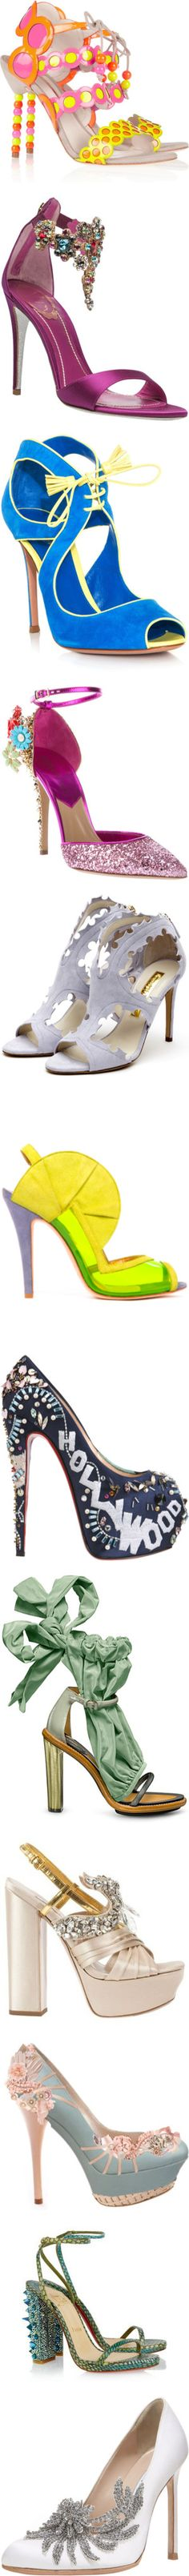 """""""Shoe Collection"""" by silvosa3 ❤ liked on Polyvore"""